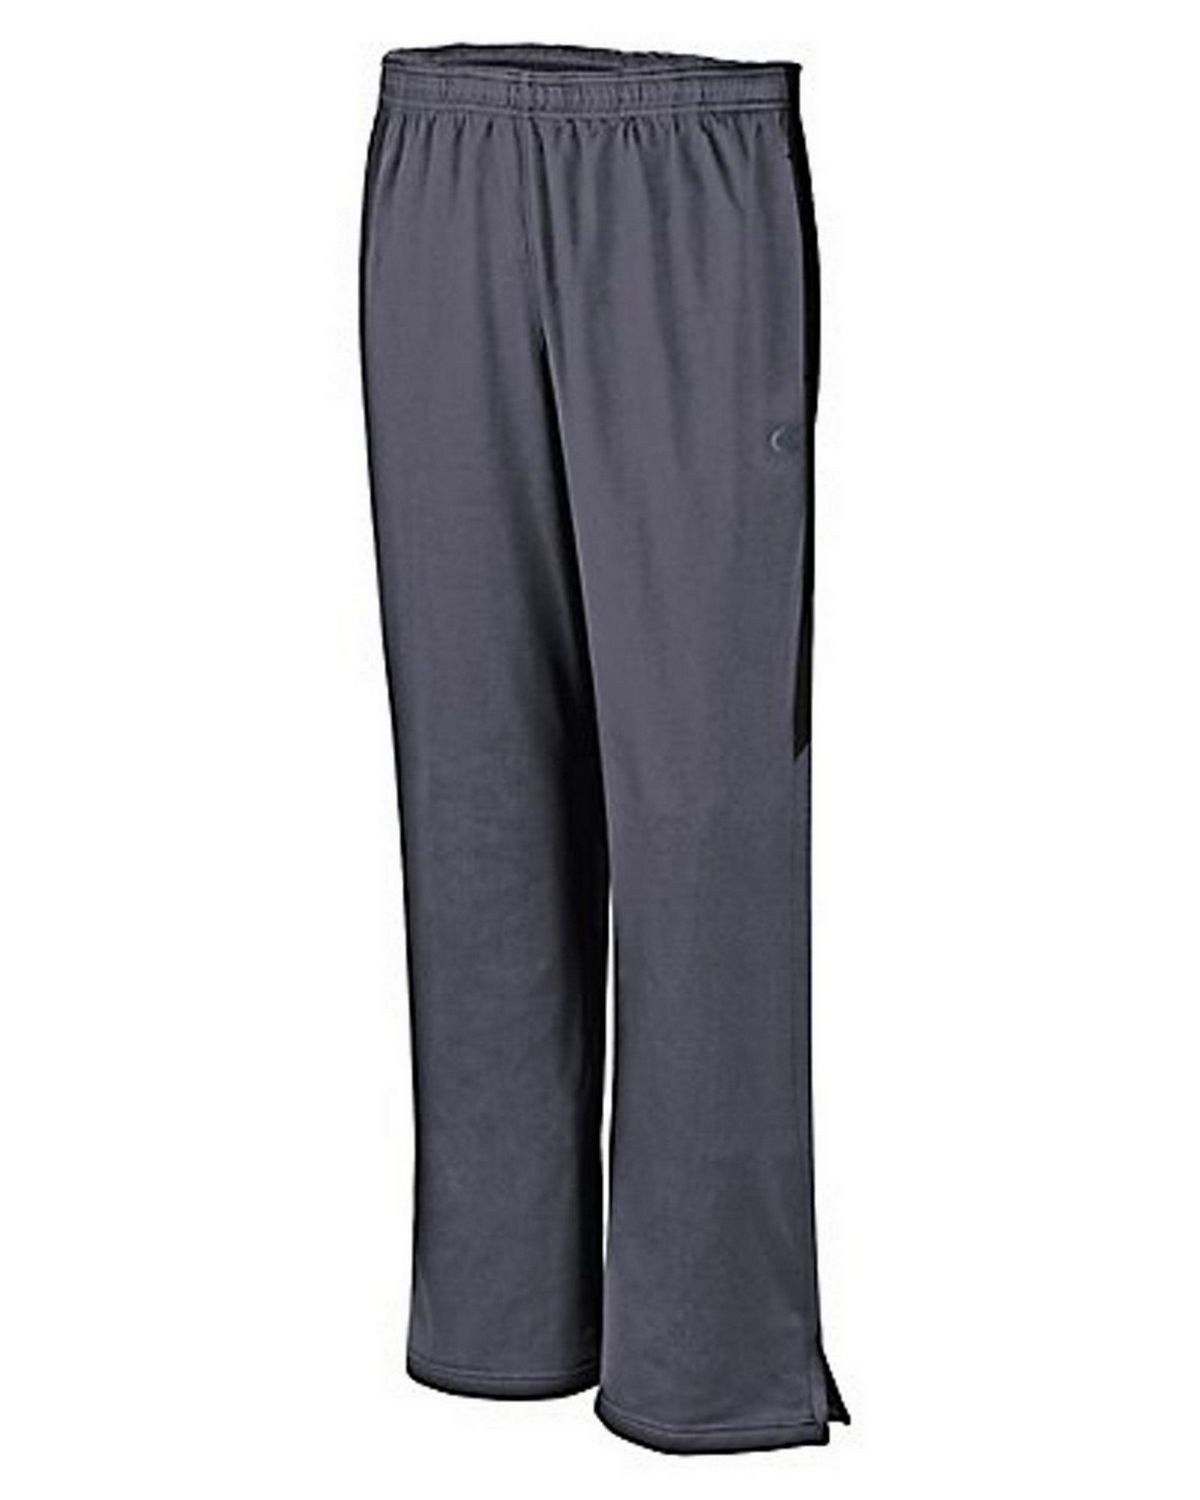 Champion P6609 Vapor PowerTrain Knit Training Pants - Slate Grey/Black - S P6609